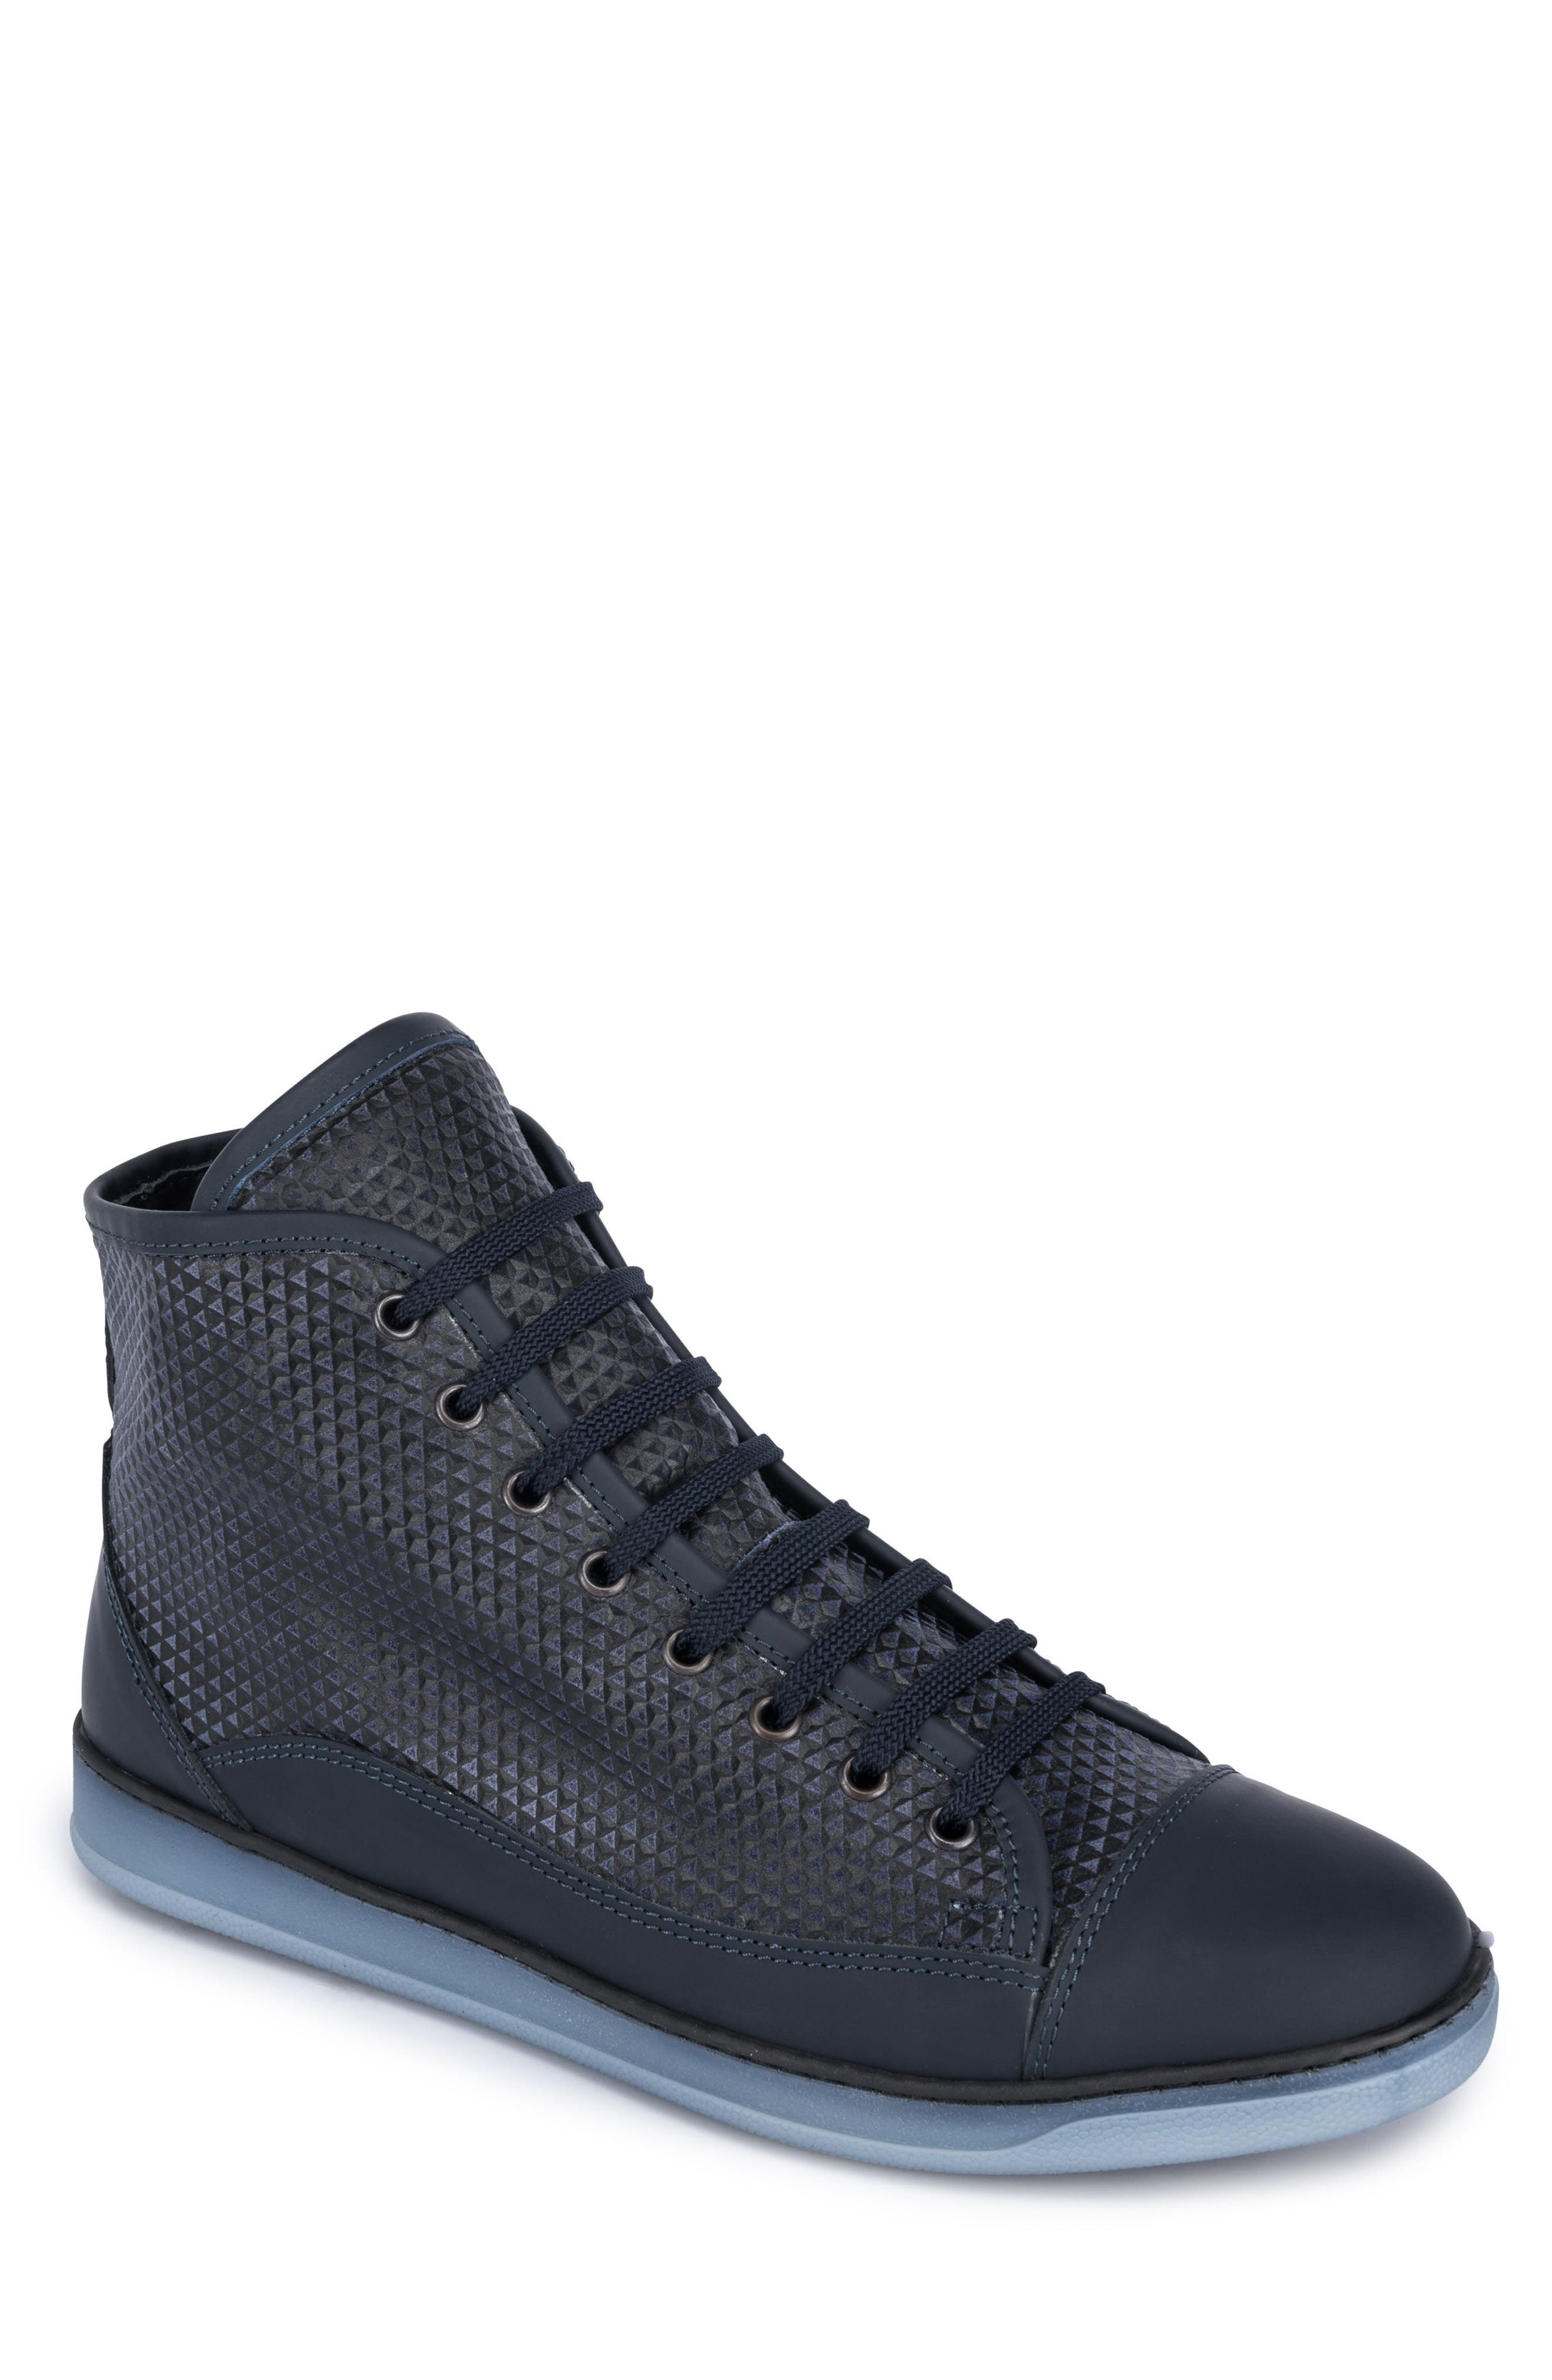 Treviso Sneaker,                             Main thumbnail 1, color,                             Indaco